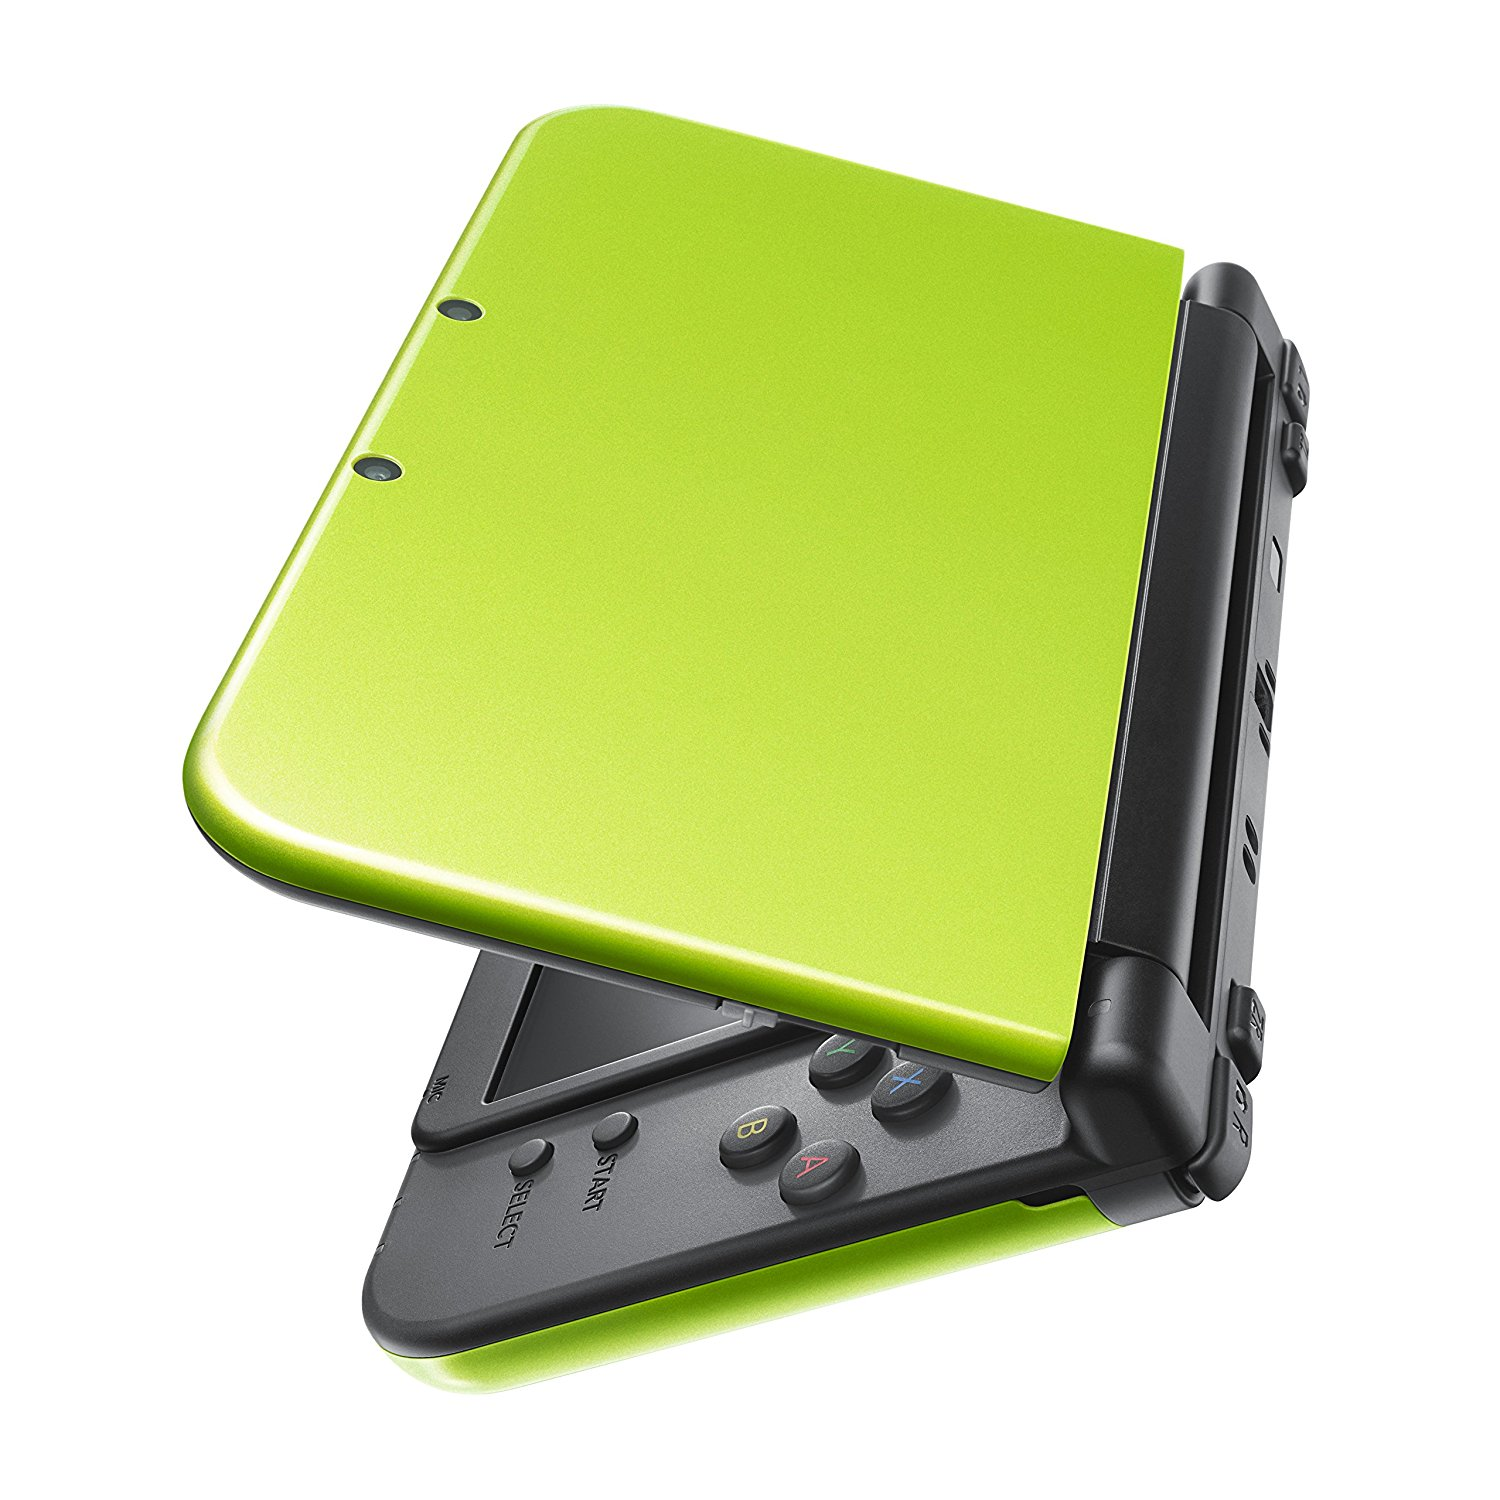 north america lime green new nintendo 3ds xl now. Black Bedroom Furniture Sets. Home Design Ideas